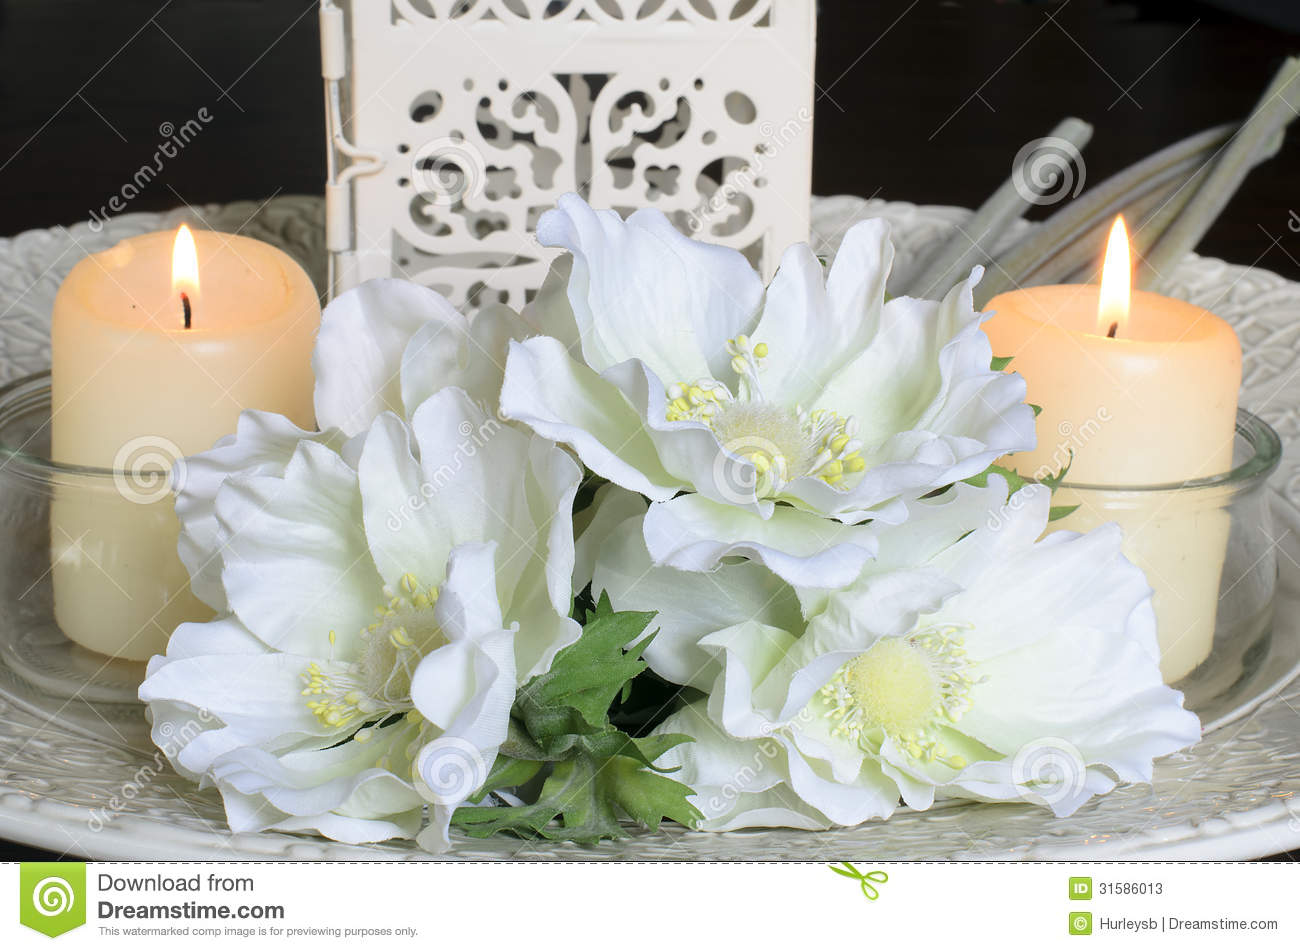 White Flowers And Candles On Stock Photos Image 31586013 : white flowers candles composition above meaning relax beauty wedding decoration 31586013 from www.dreamstime.com size 1300 x 951 jpeg 125kB